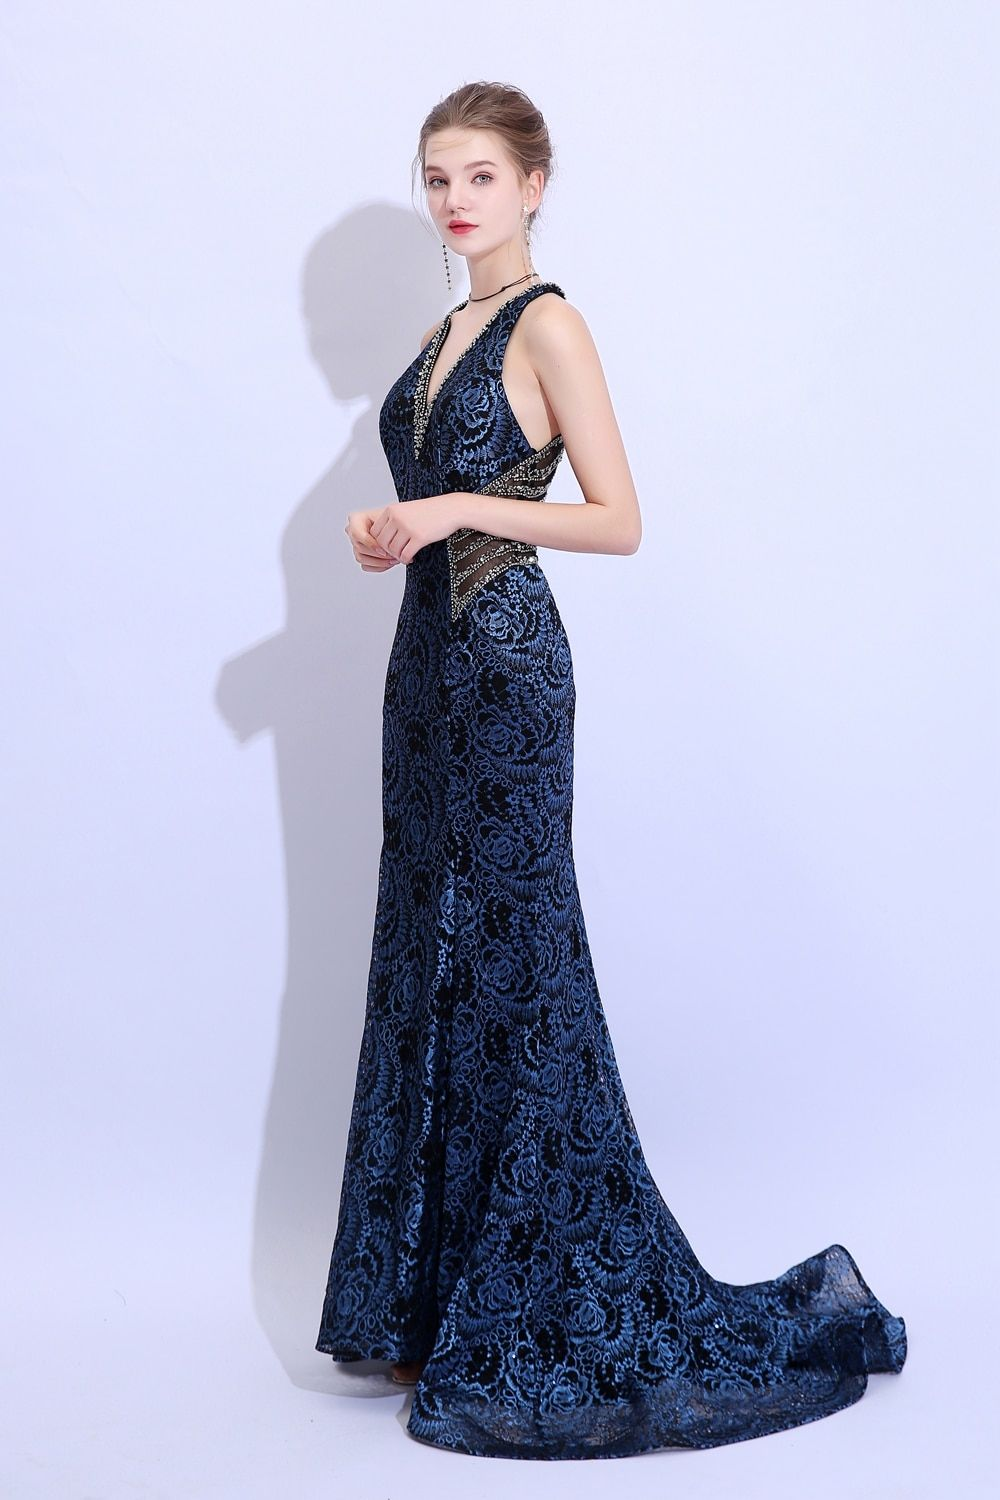 f47efde6fc140 New Lace Mermaid Evening Dress Luxury Sexy Navy Blue Sleeveless Sweep Train  Fishtail Prom Party Gown